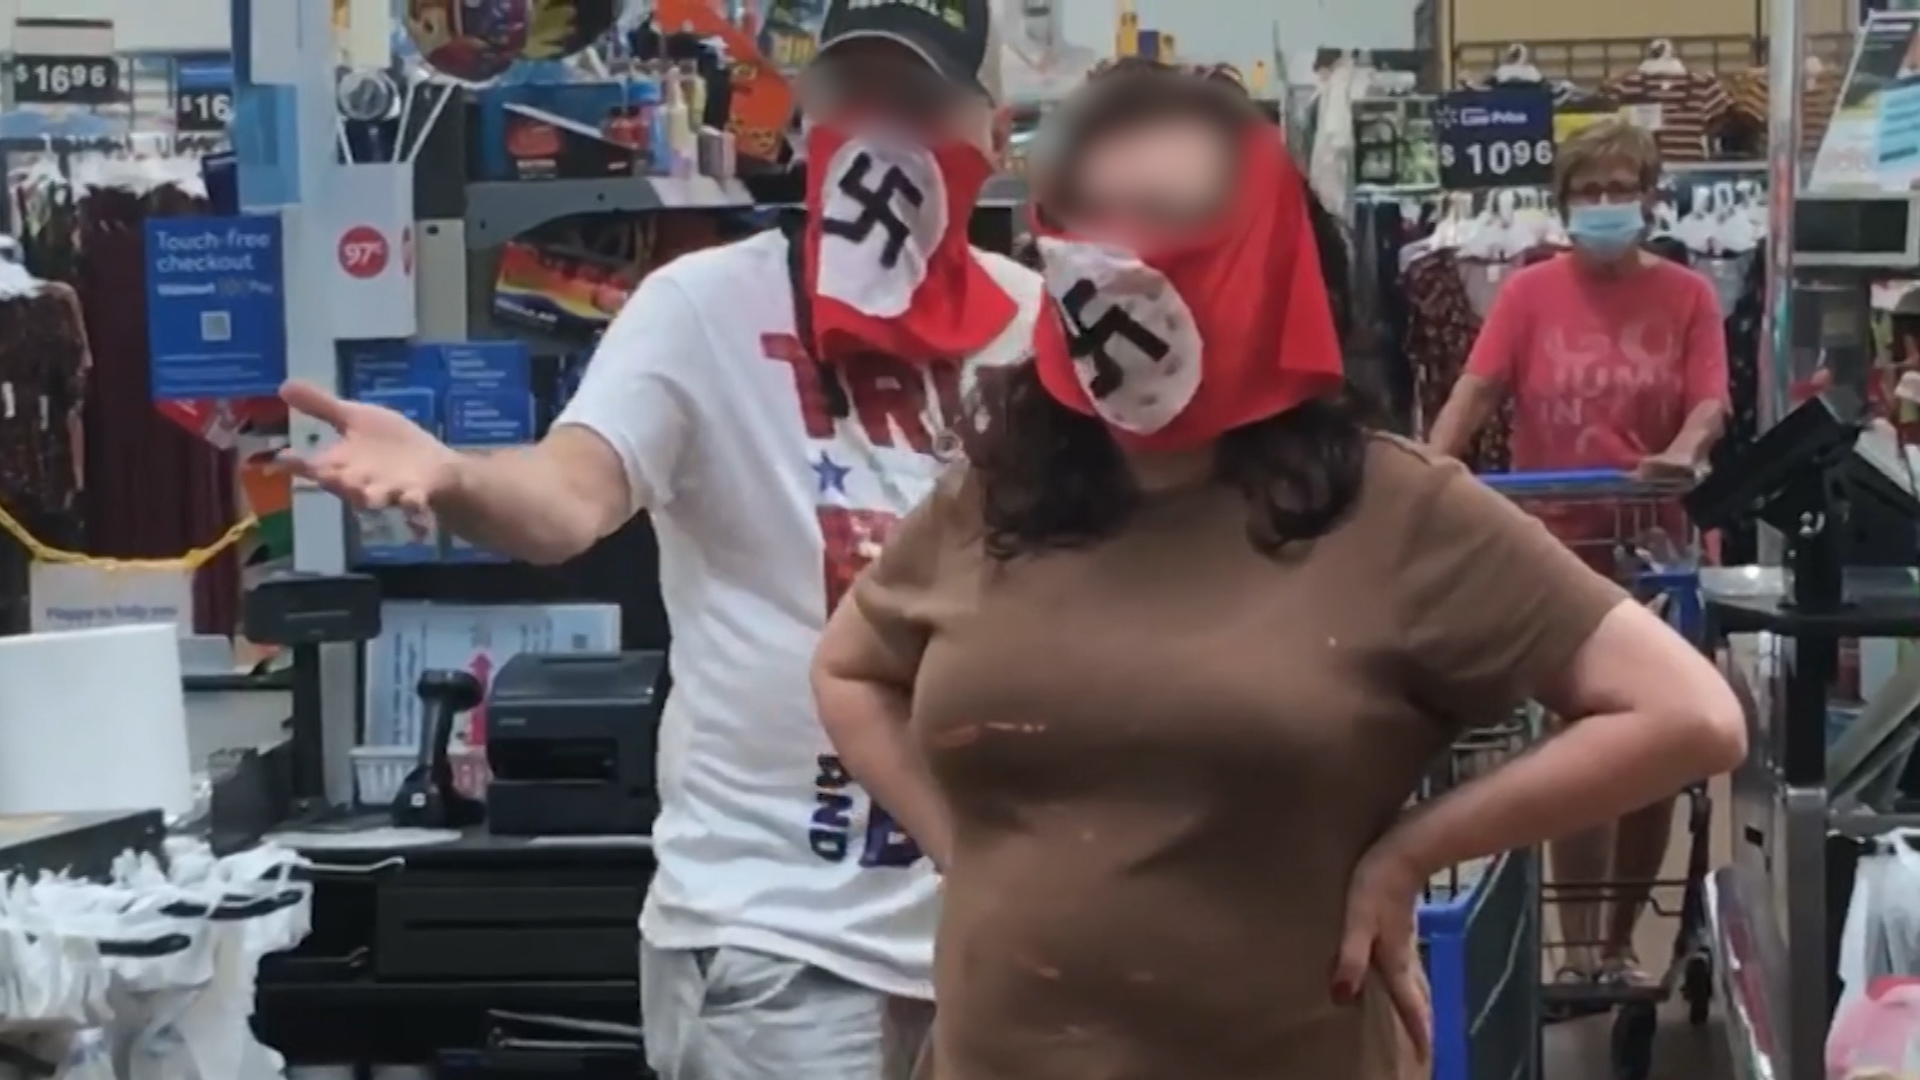 Great granddaughter of anti-Nazi resistance fighter confronted a couple wearing swastika masks in a US Walmart